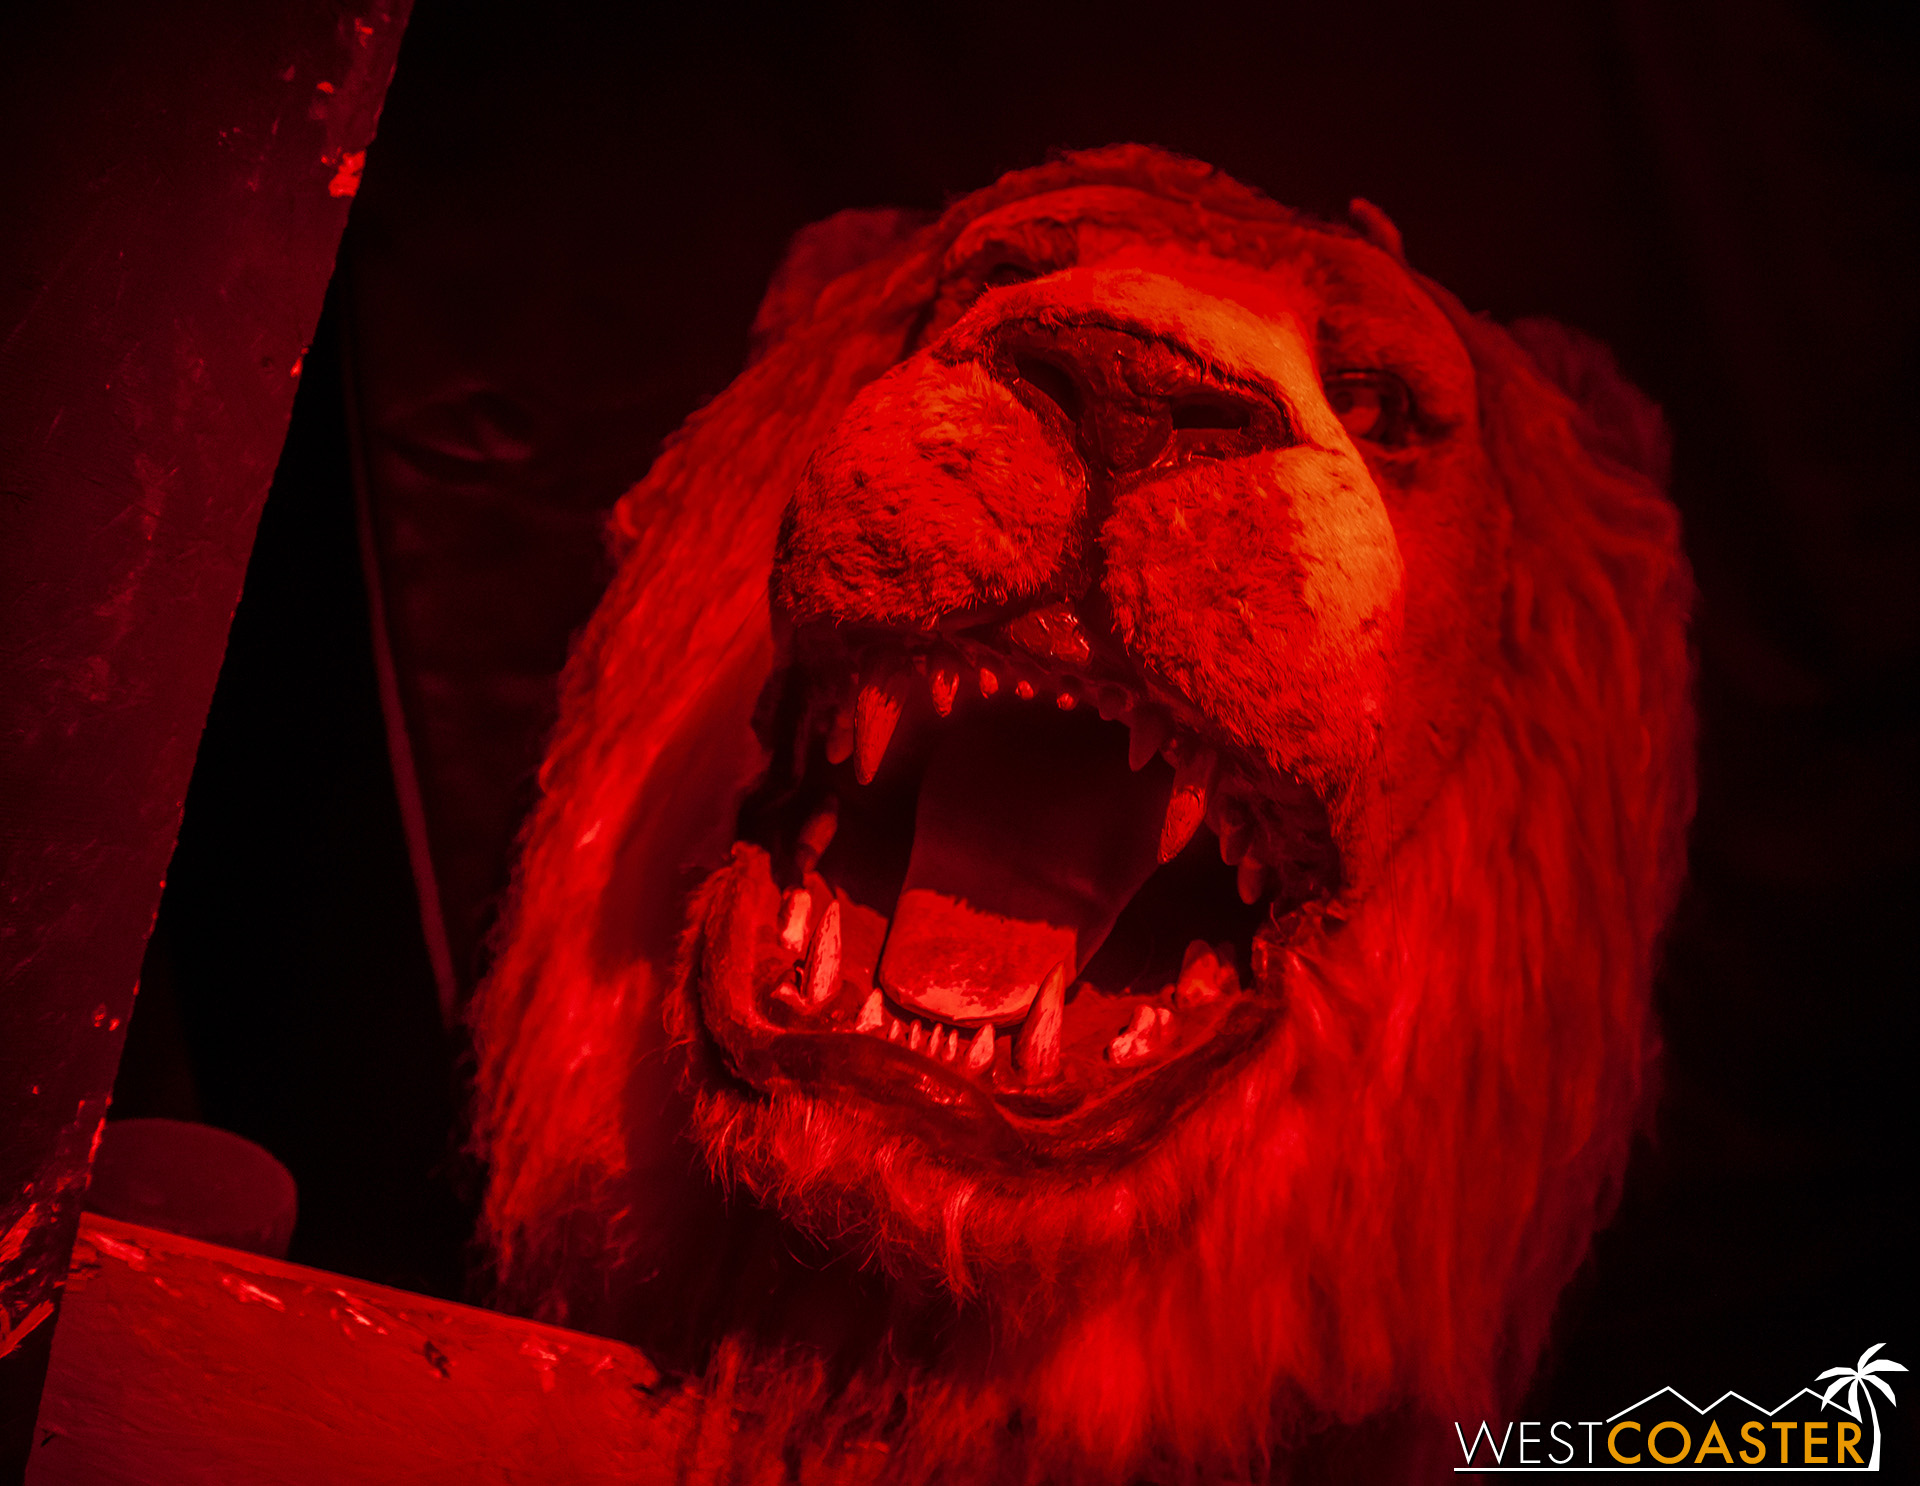 Darkness, then strobes, then lions, oh my!